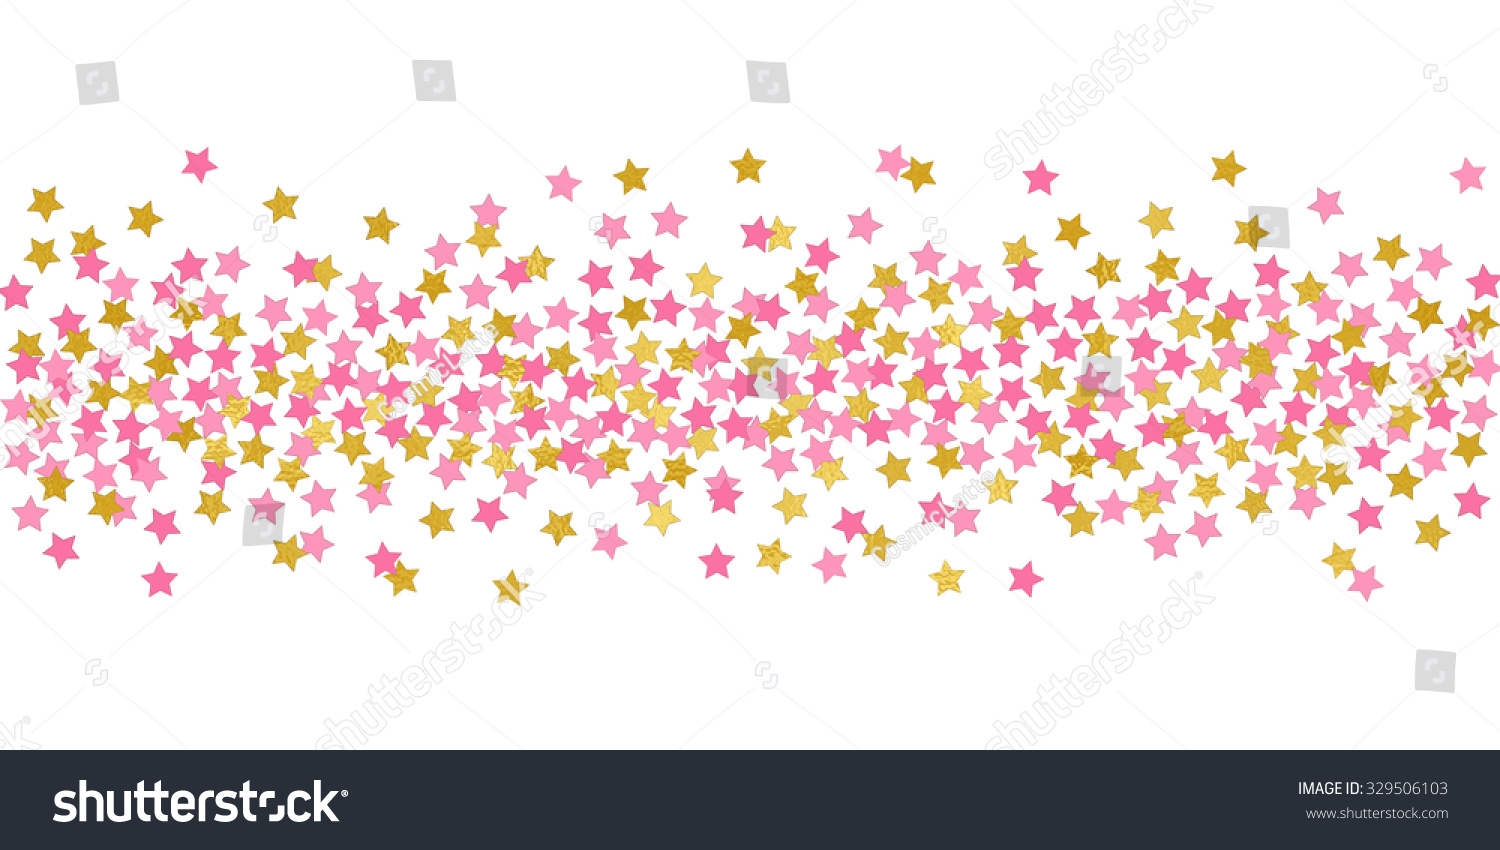 Small Stars Pink Gold Confetti Border Stock Illustration 329506103 - Shutterstock